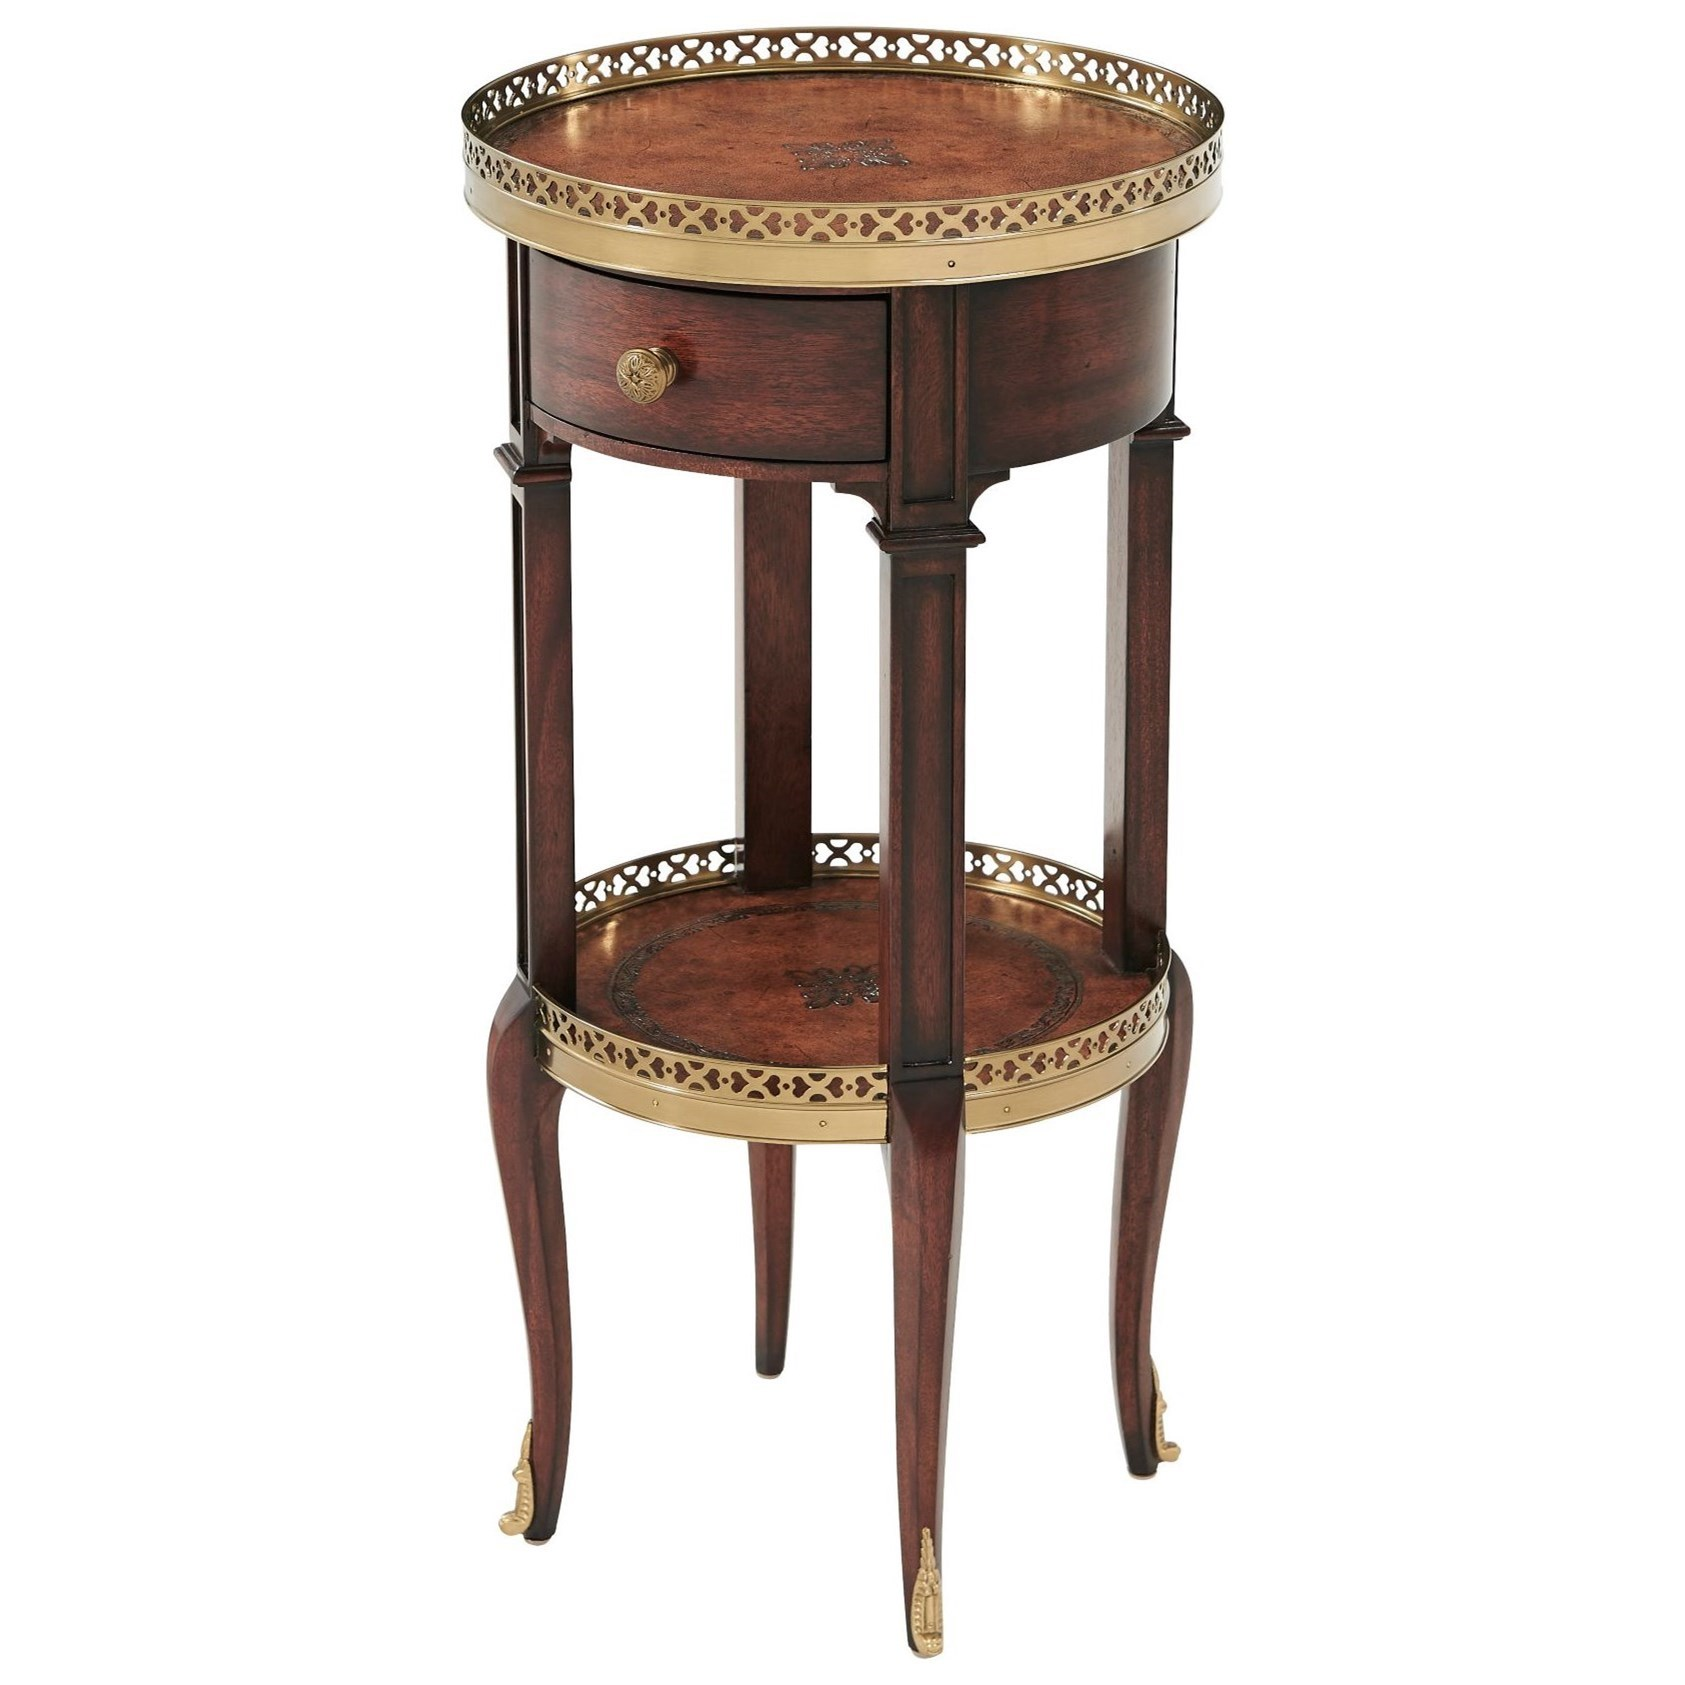 Tables Louis XVI Circle Lamp Table by Theodore Alexander at Alison Craig Home Furnishings